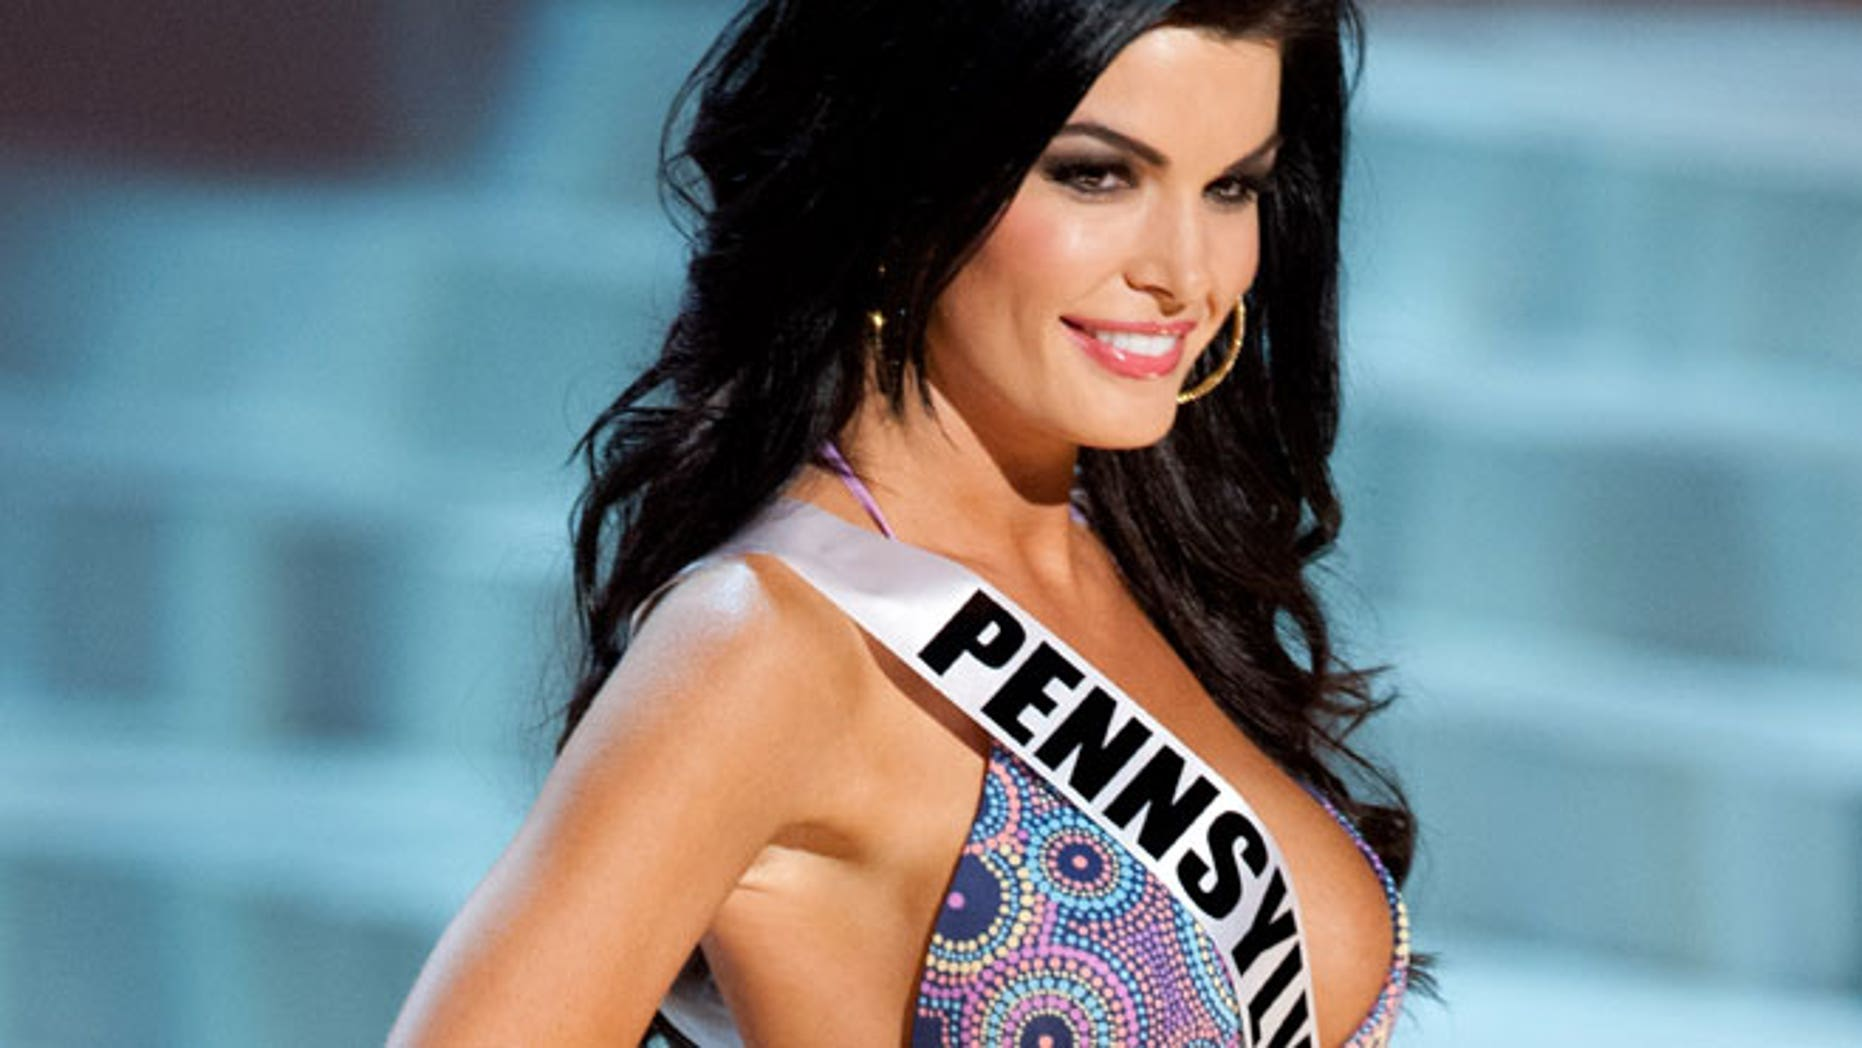 May 30: Miss Pennsylvania Sheena Monnin resigned Monday after claiming the show was rigged.